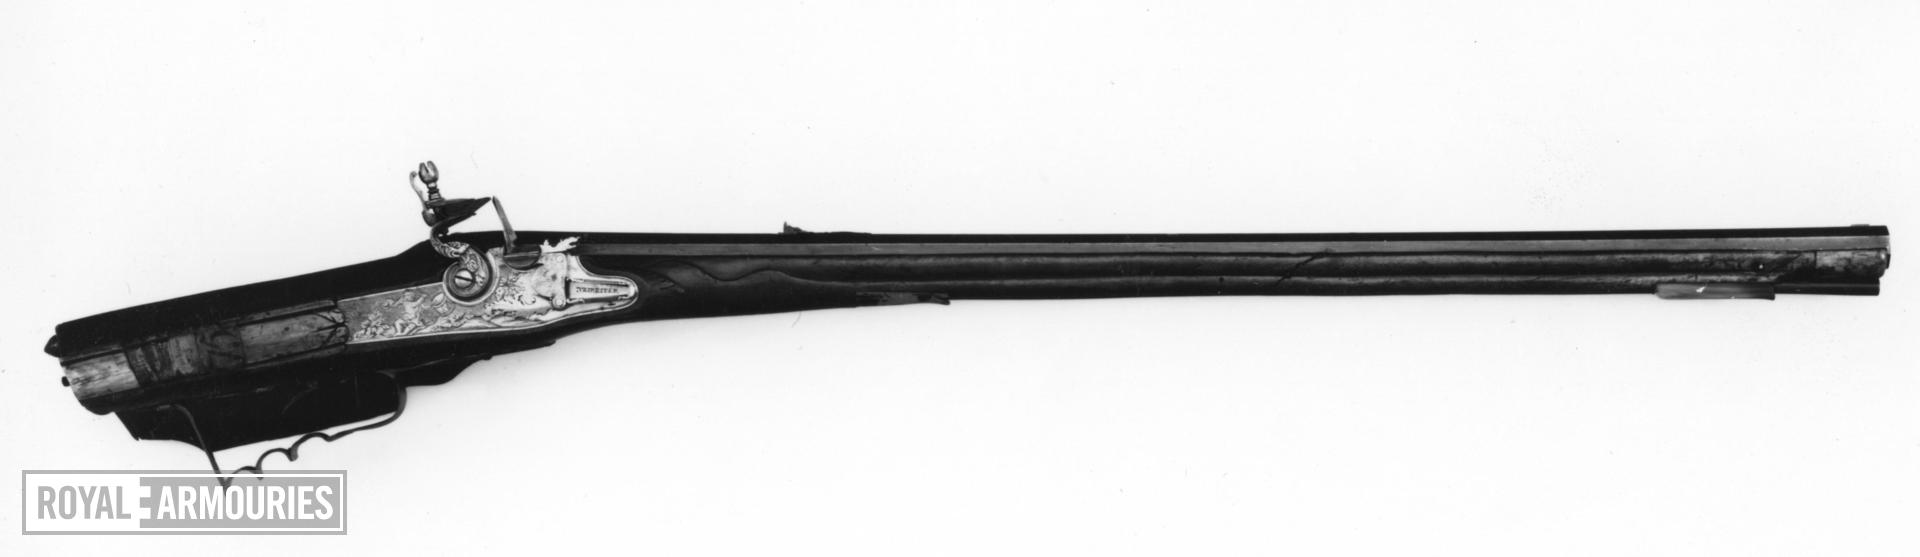 Flintlock muzzle-loading rifle